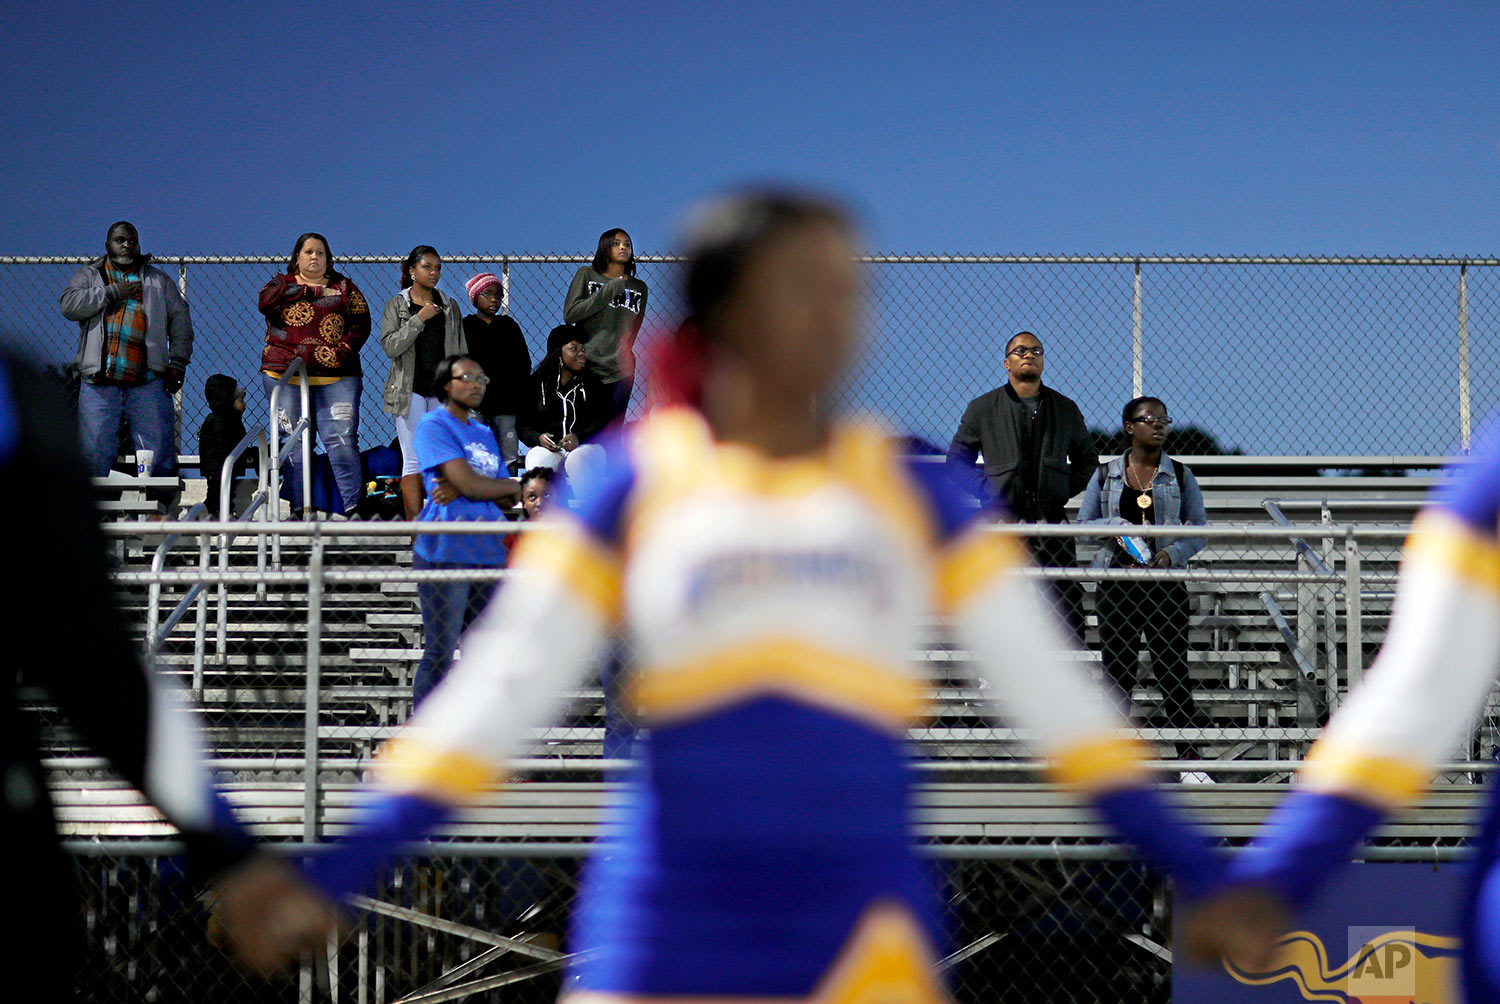 Spectators stand for the national anthem before a South Robeson High School football game in Rowland, N.C., Friday, Oct. 27, 2017. When the cheerleading squad knelt during the national anthem at a recent game, the protest of racial injustice highlighted divisions in Robeson County, North Carolina, the most diverse rural county in America, where voters also helped Donald Trump win the county and the White House. (AP Photo/David Goldman)